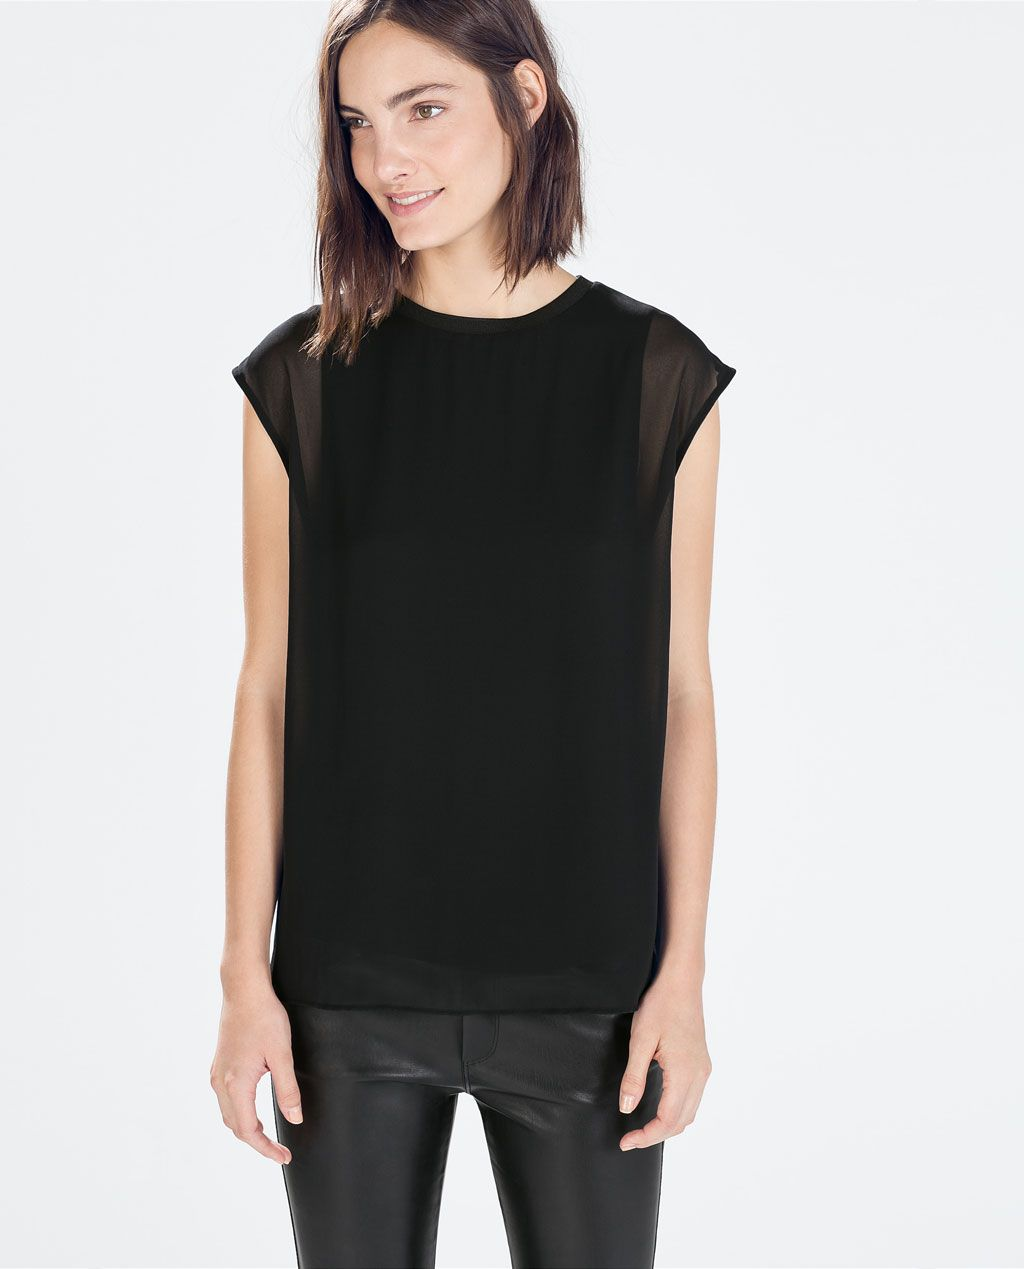 493af83fc18f8 simple   chic  SLEEVELESS TOP from Zara - under  75